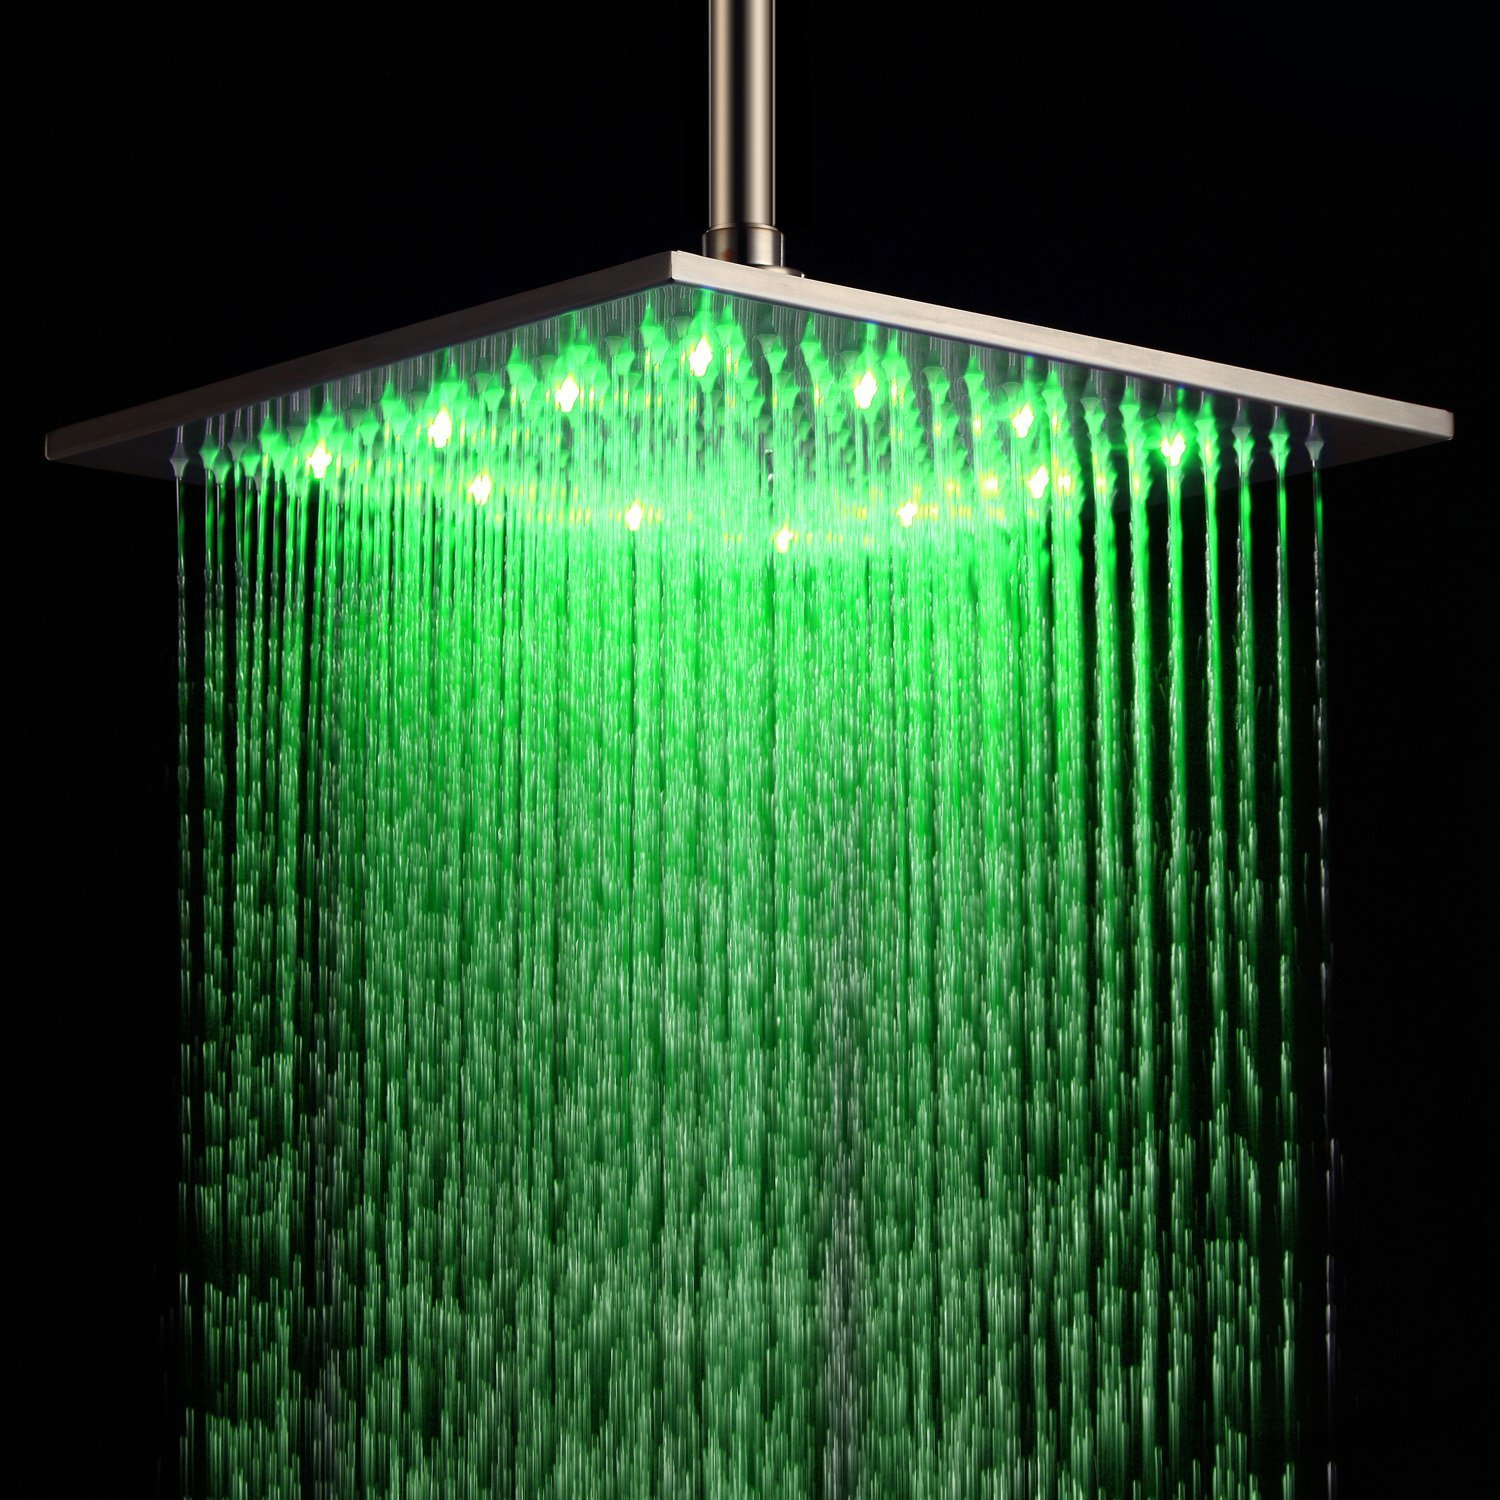 LED Shower Head Temperature 3 Color Changing 16 inch Square ABS For the Bathroom